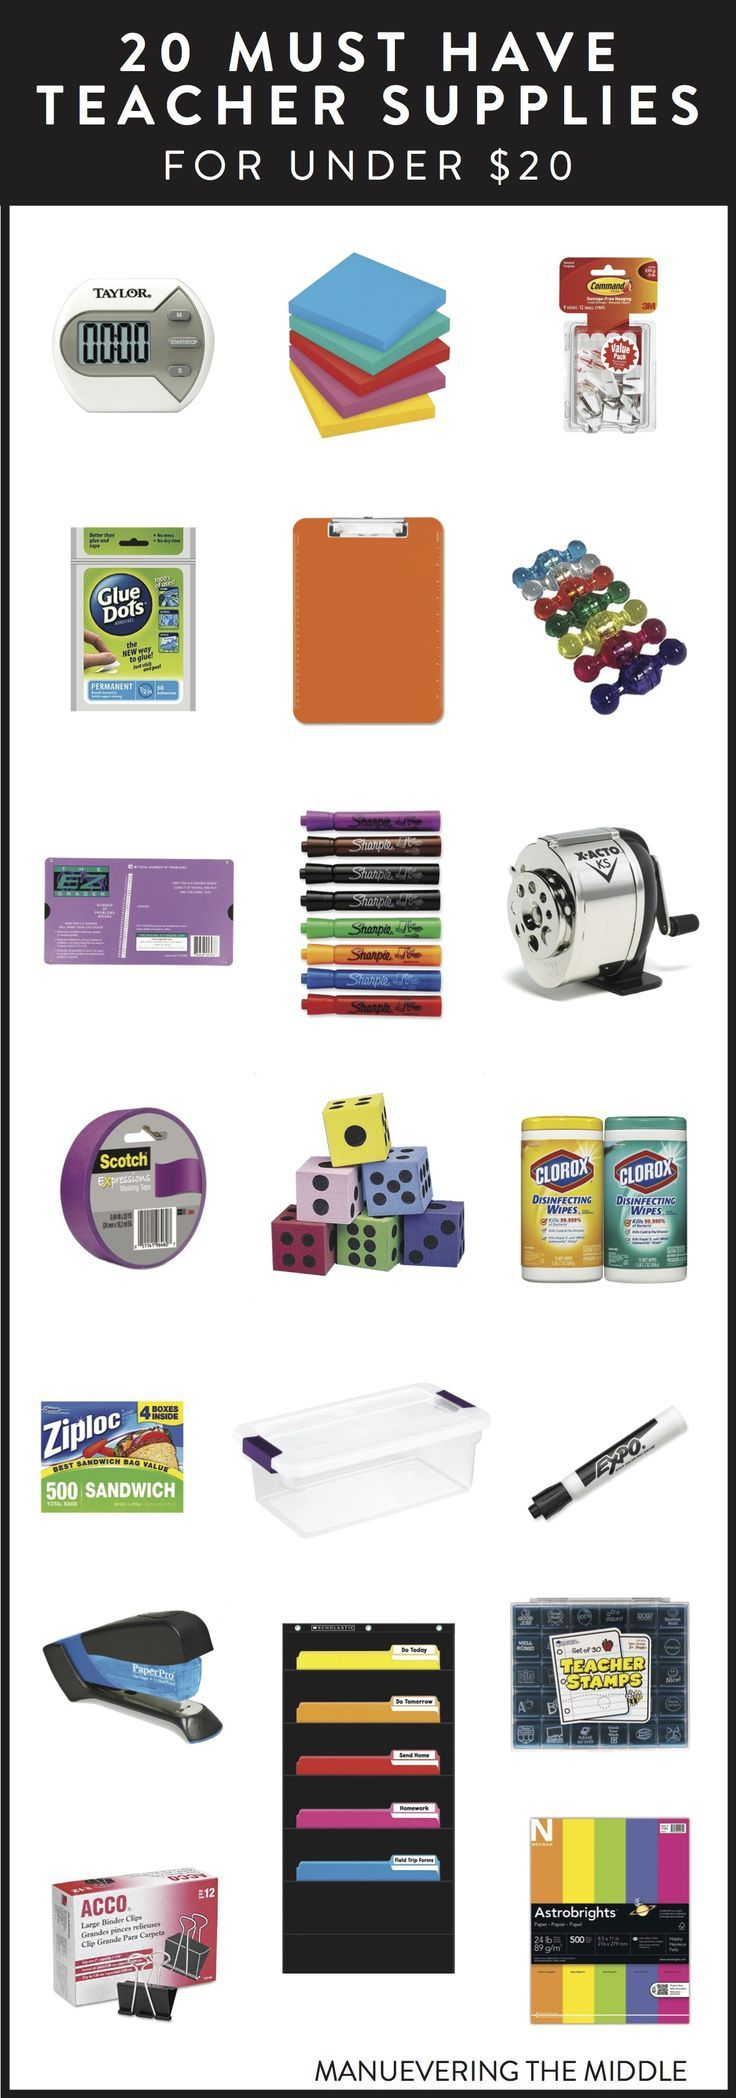 20 Teacher Supplies Under $20 - Must have school supplies to stock your classroom. | maneuveringthemid...